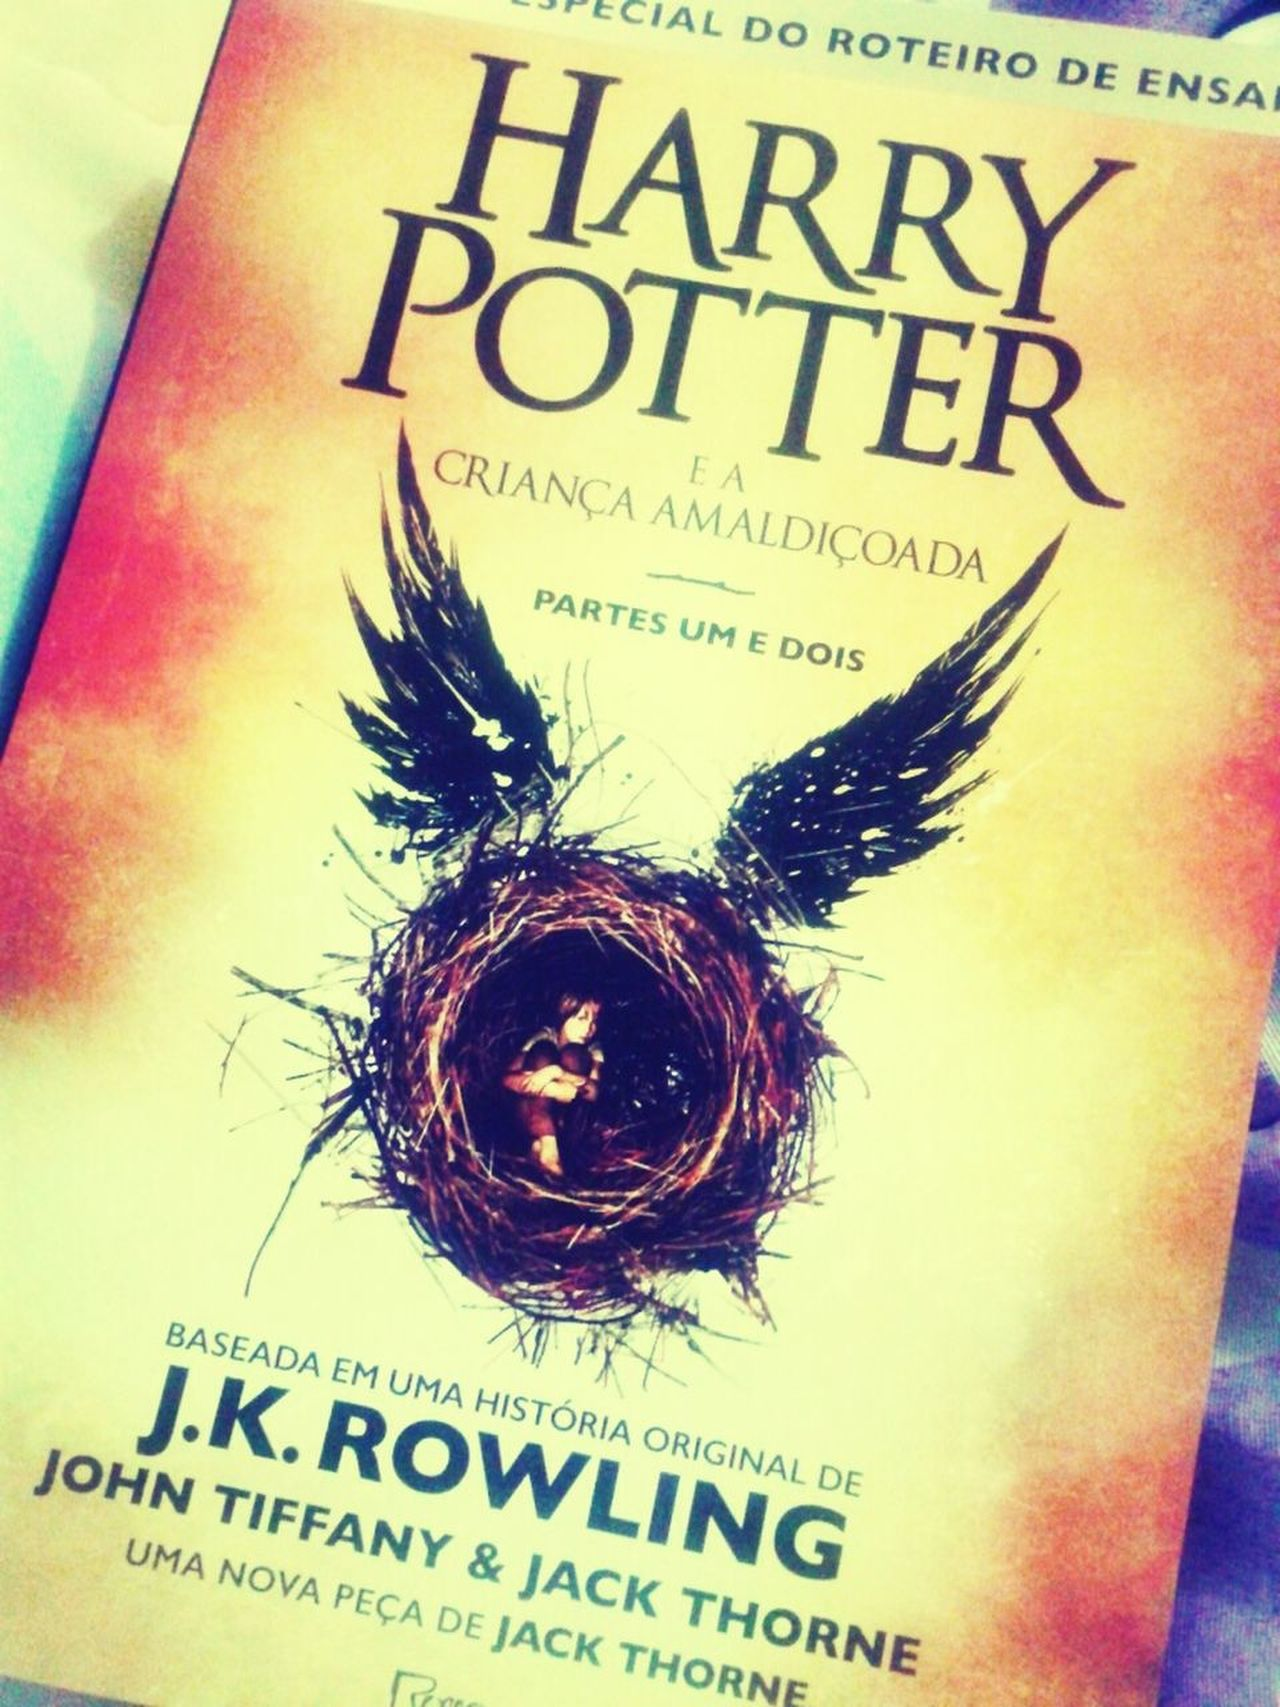 Harry Potter ❤ Books ♥ Loveit